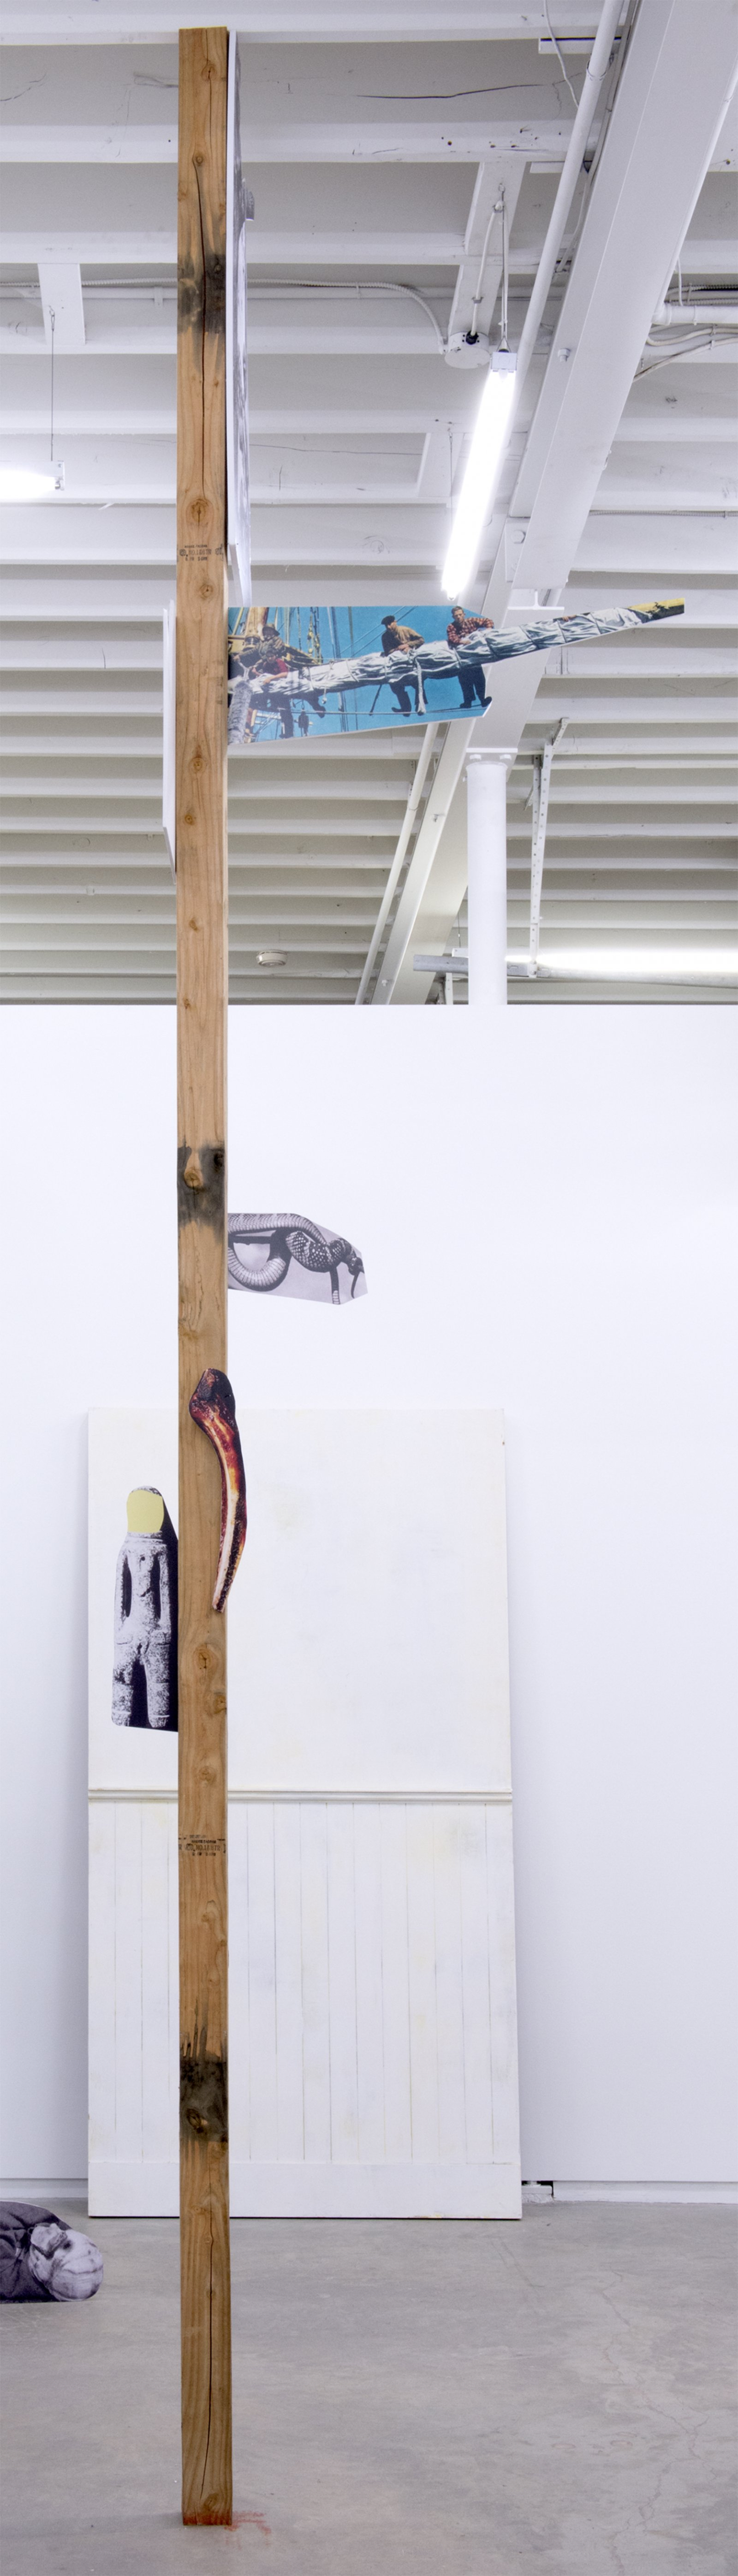 Geoffrey Farmer, The other ate one man, one man was set adrift, one man turned into a snake, one man washed ashore and became a statue and the others eyes were stolen by the owl., 2014, douglas fir pole, 6 photographs mounted on foamcore, 200 x 4 x 4 in. (508 x 9 x 9 cm)